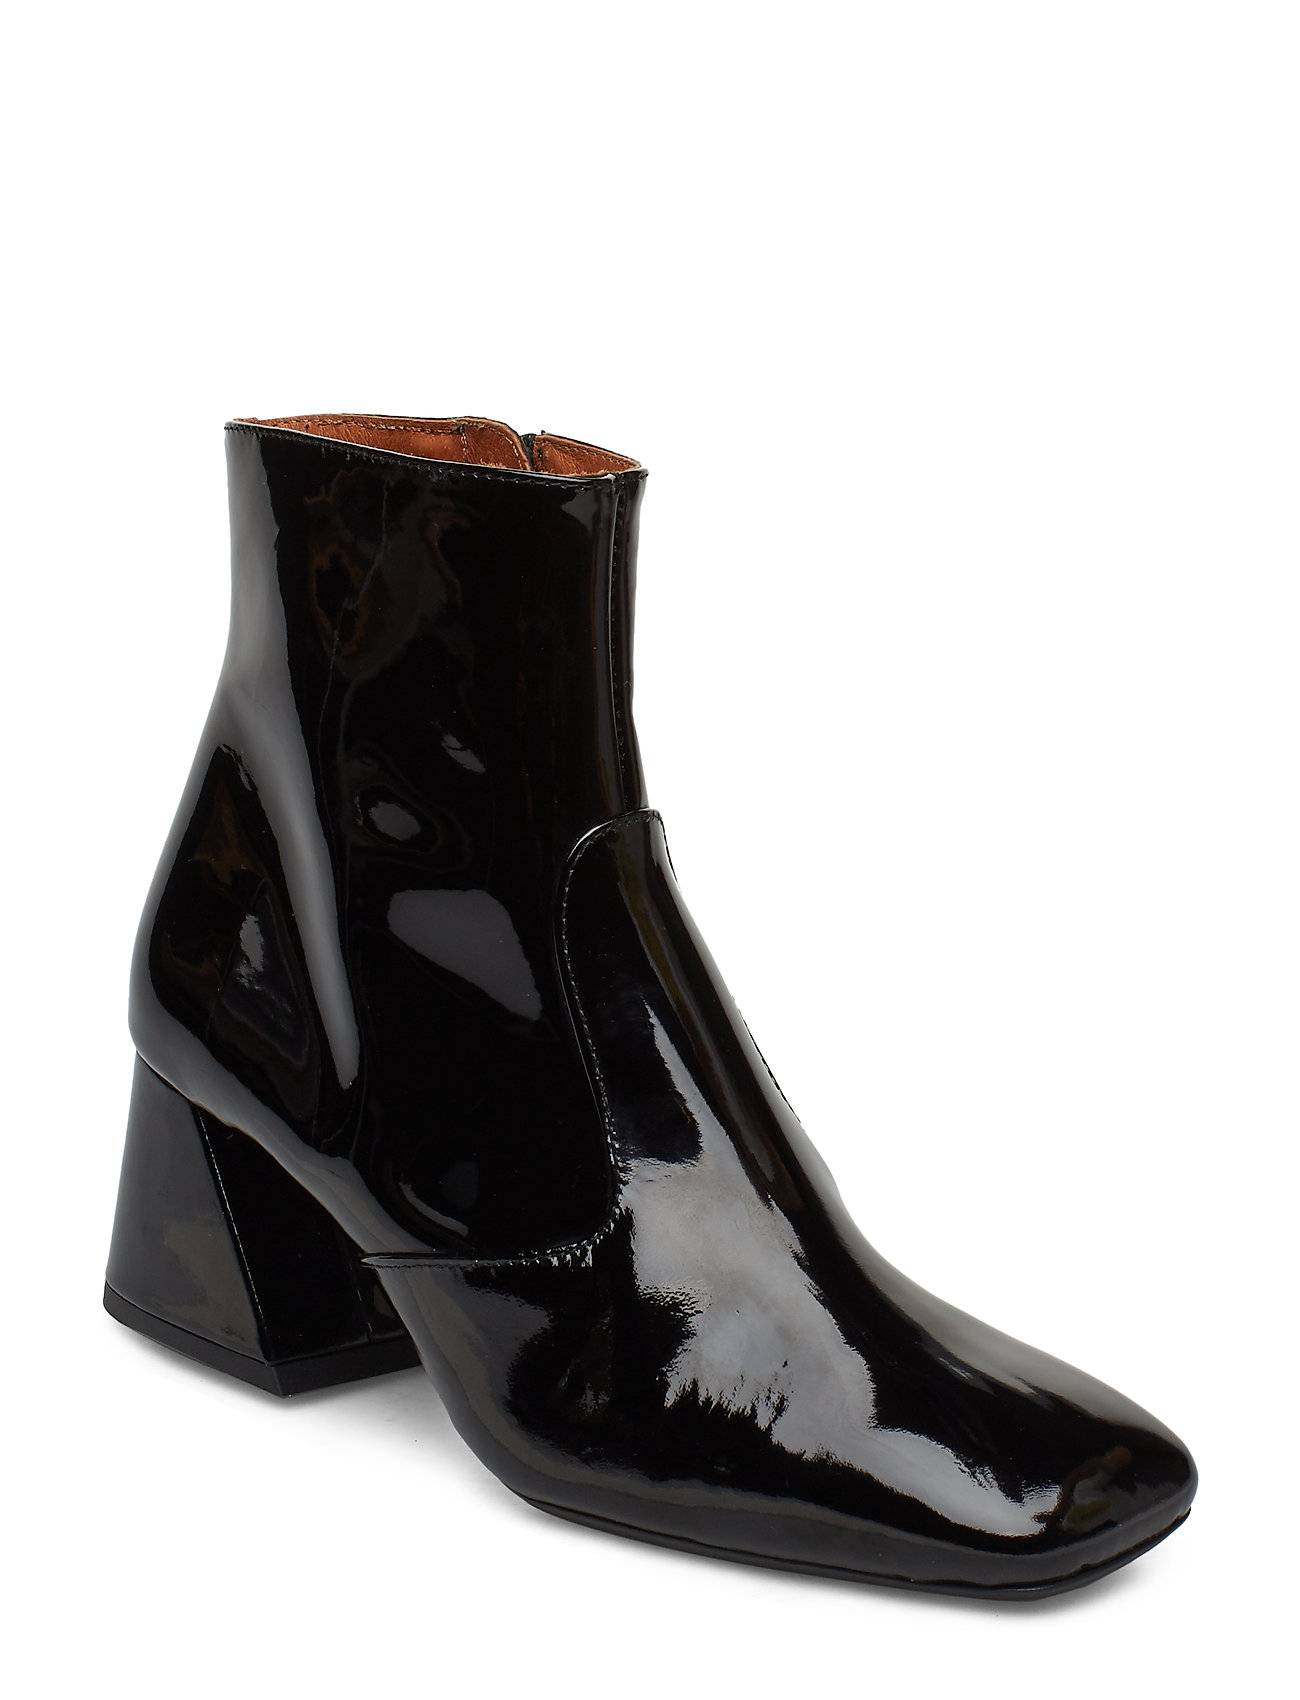 Henry Kole Nora Patent Black Shoes Boots Ankle Boots Ankle Boots With Heel Musta Henry Kole